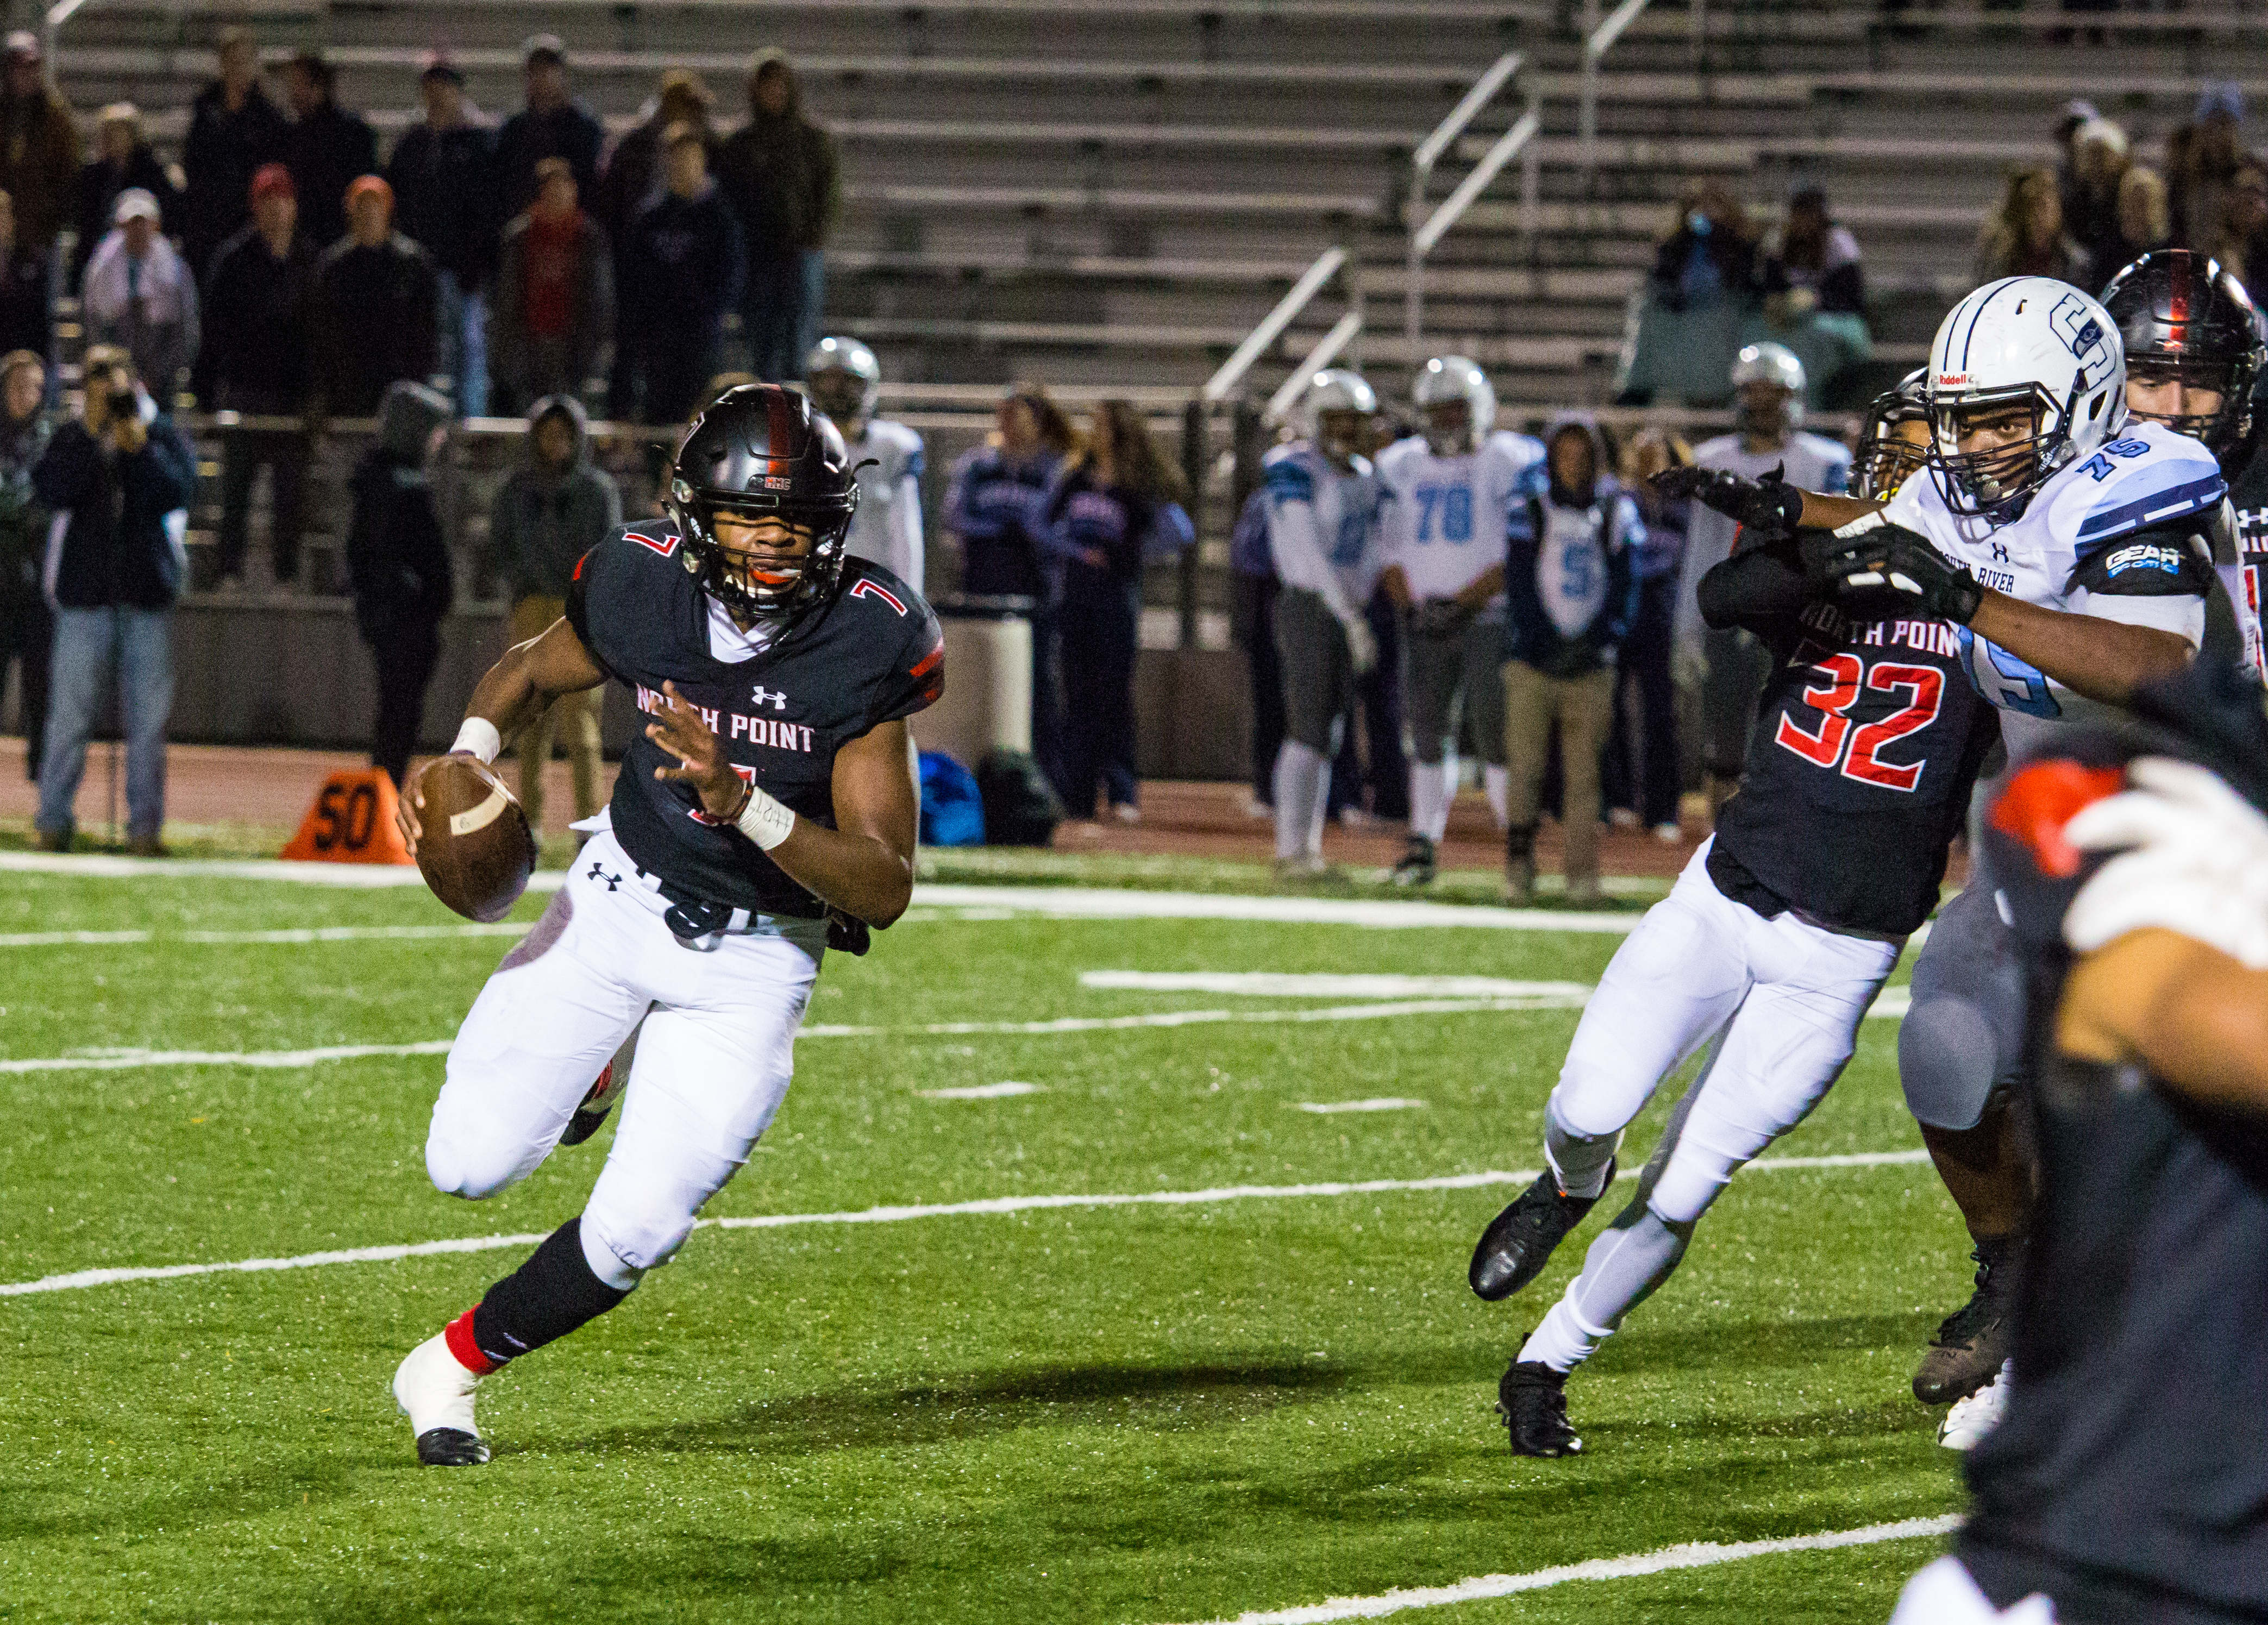 a8e3f3fac0b13 High school football notebook: North Point, Glenelg reach state title game  for first time